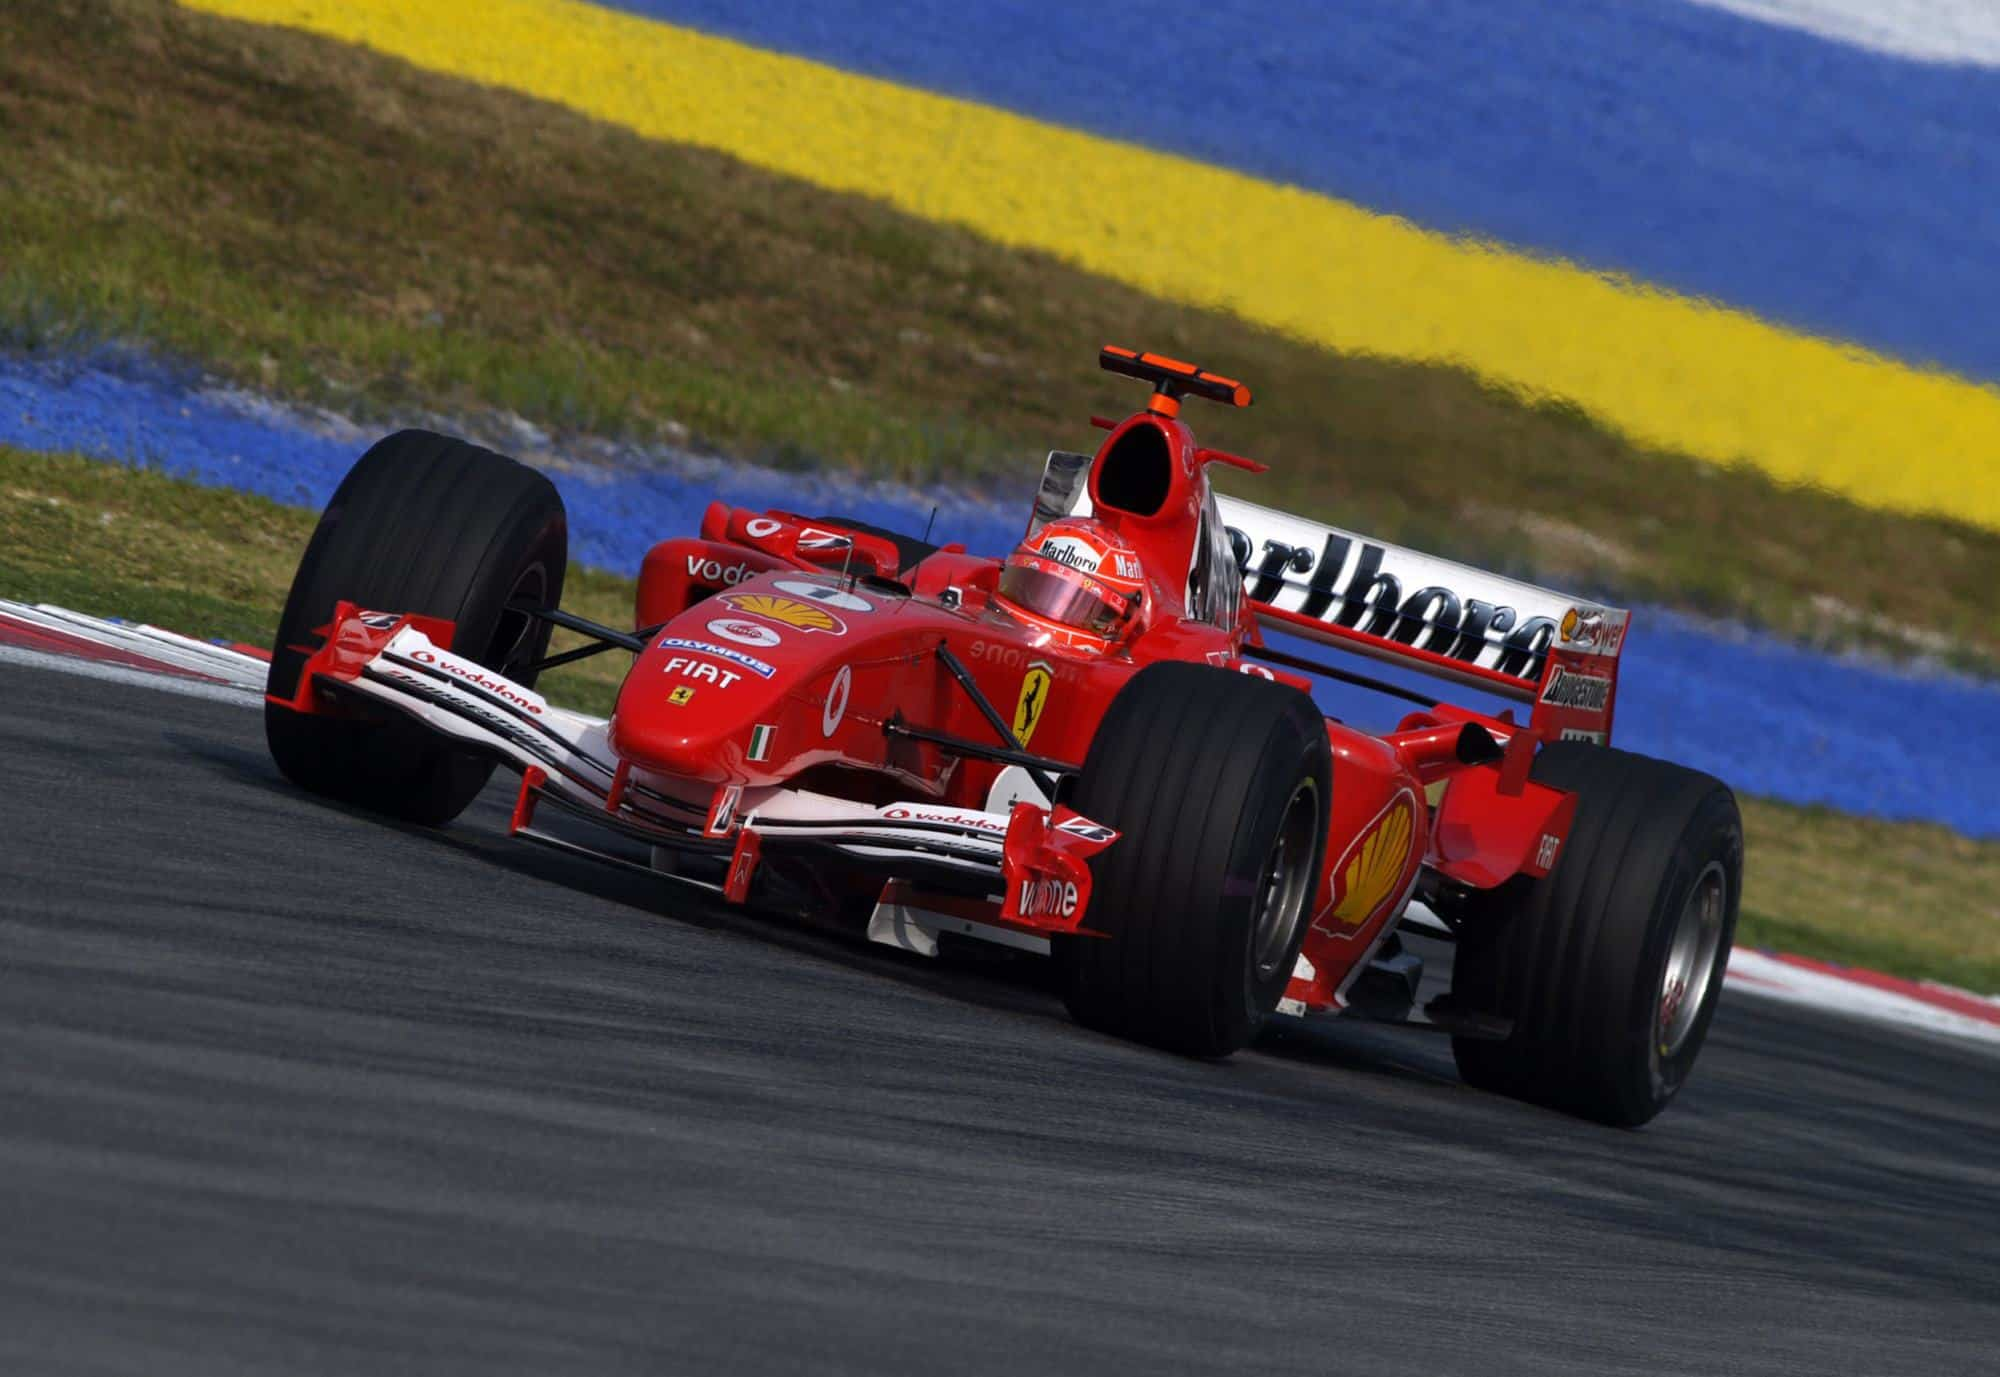 2005 Malaysian Gp Alonso Takes Championship Lead First F1 Podium For Toyota